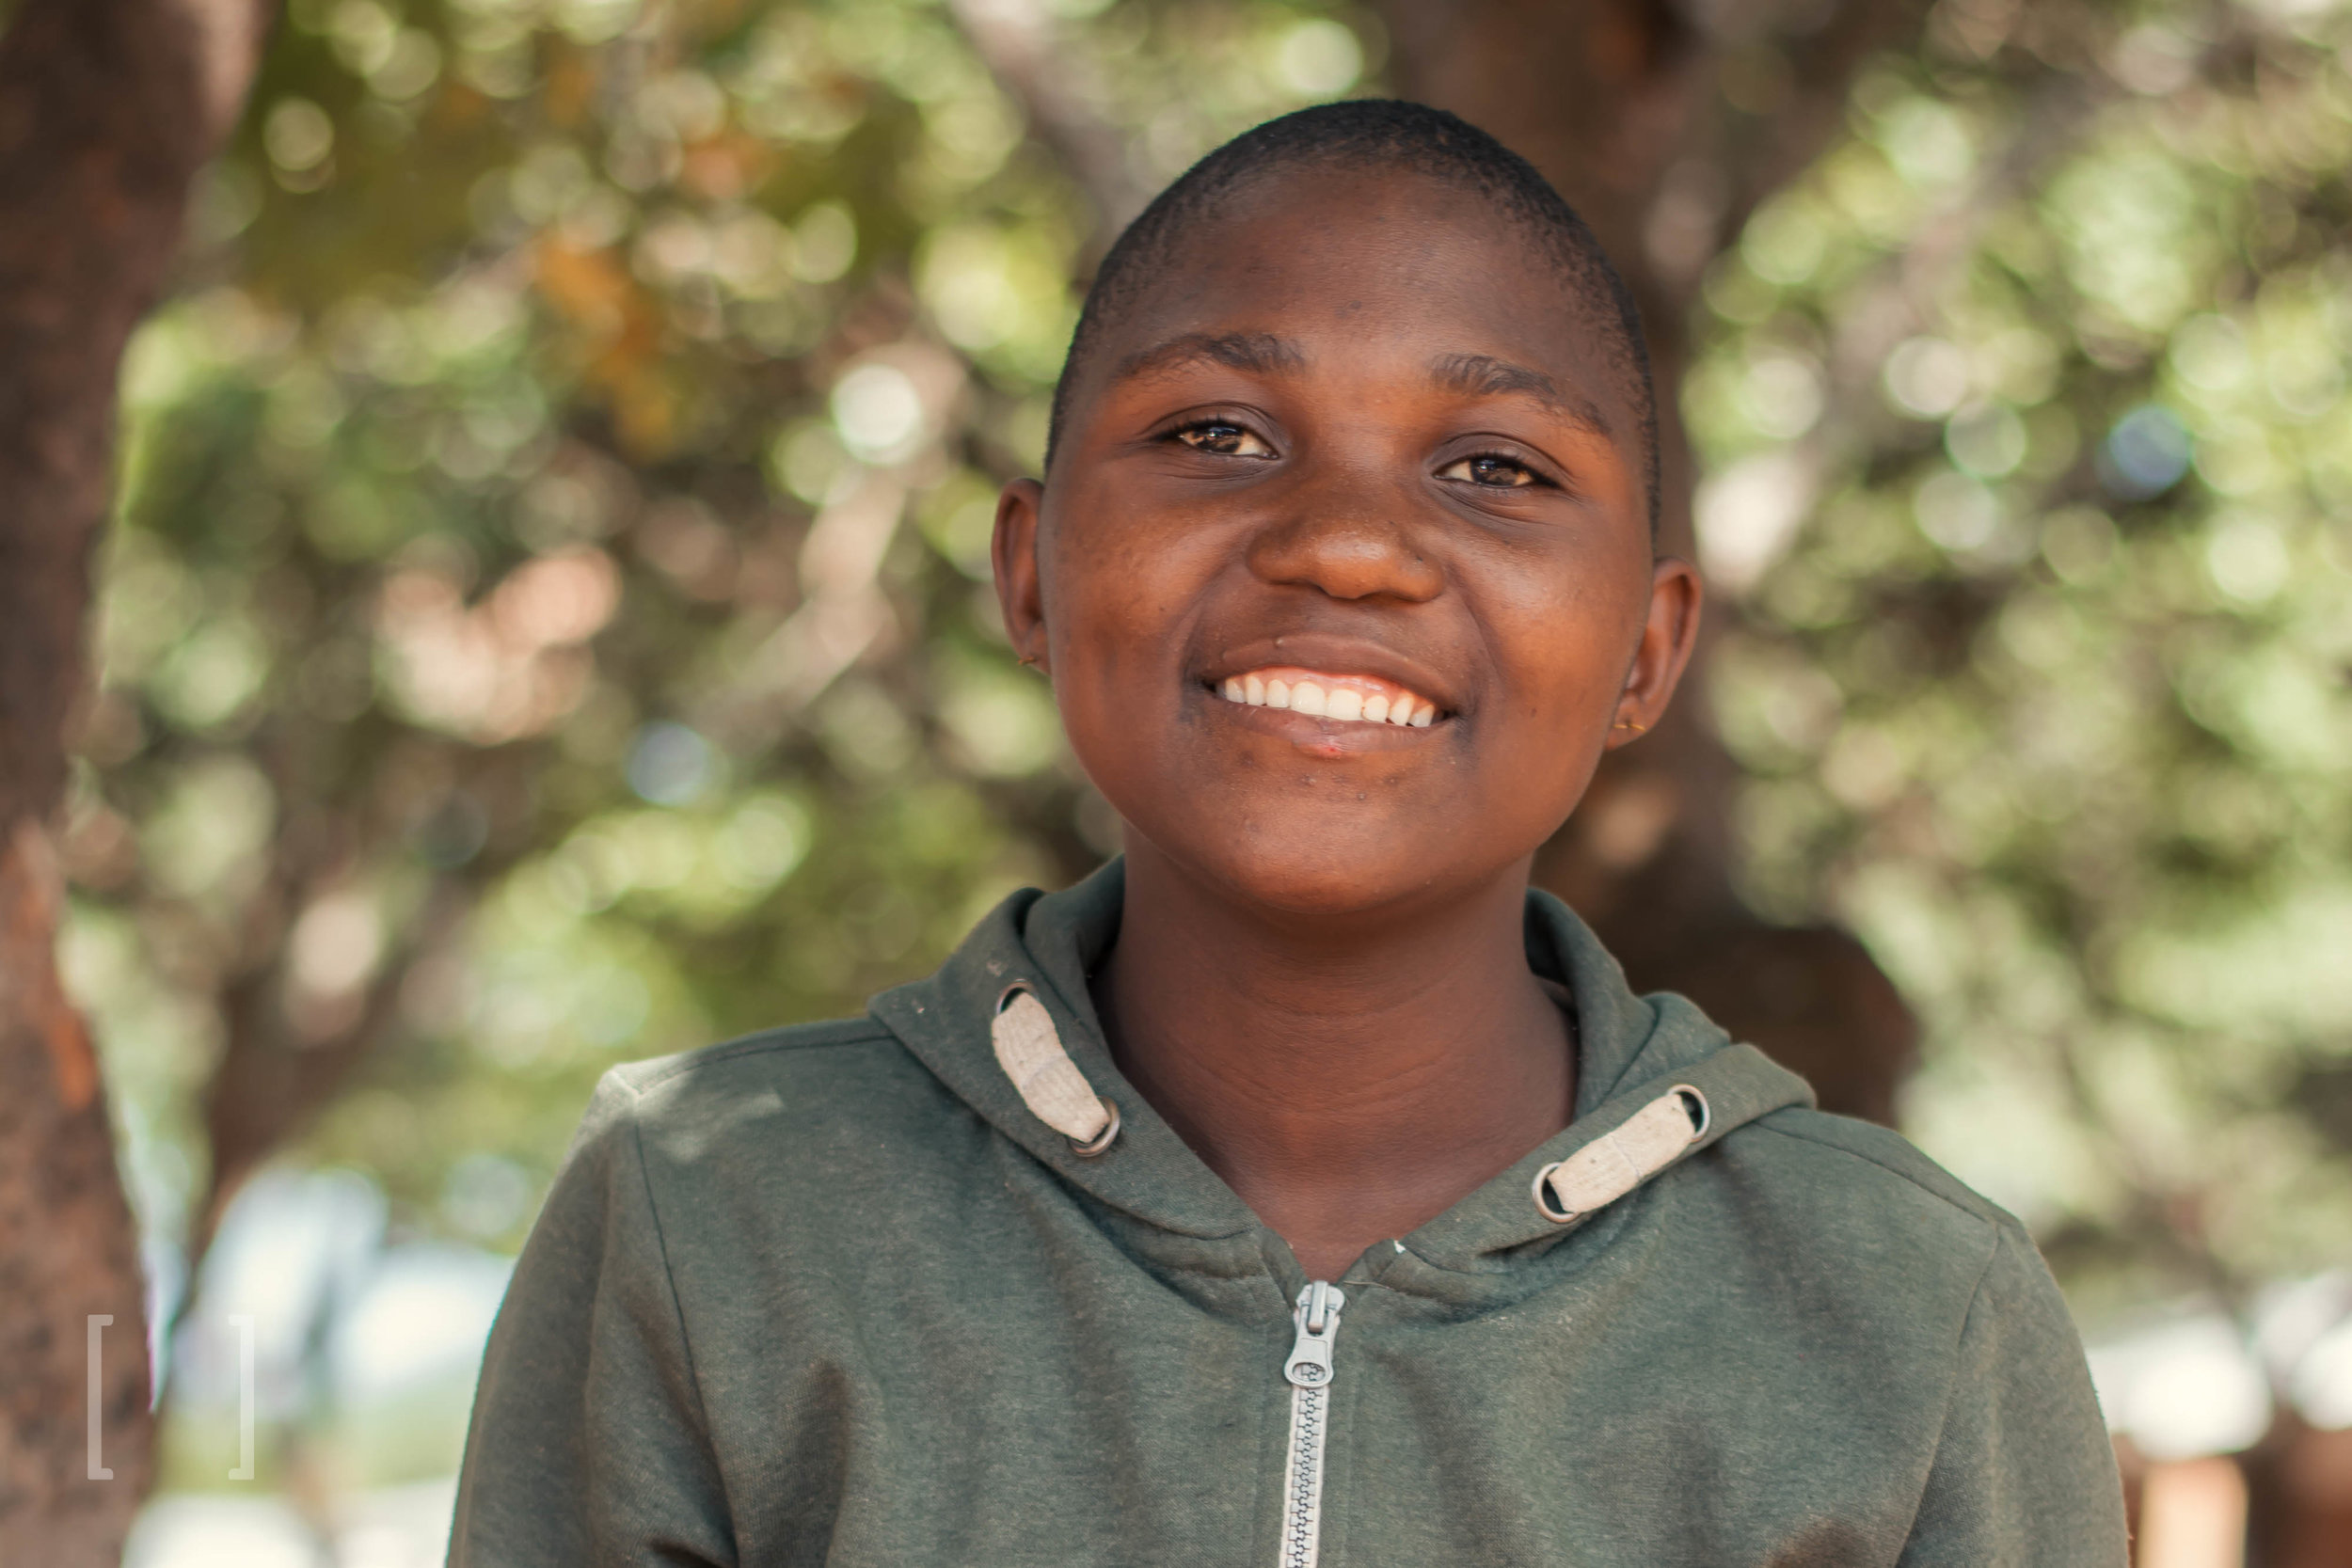 Yvonne - Yvonne is a great student and wants be a stewardess for Air Malawi when she grows up! Help her dreams take flight.